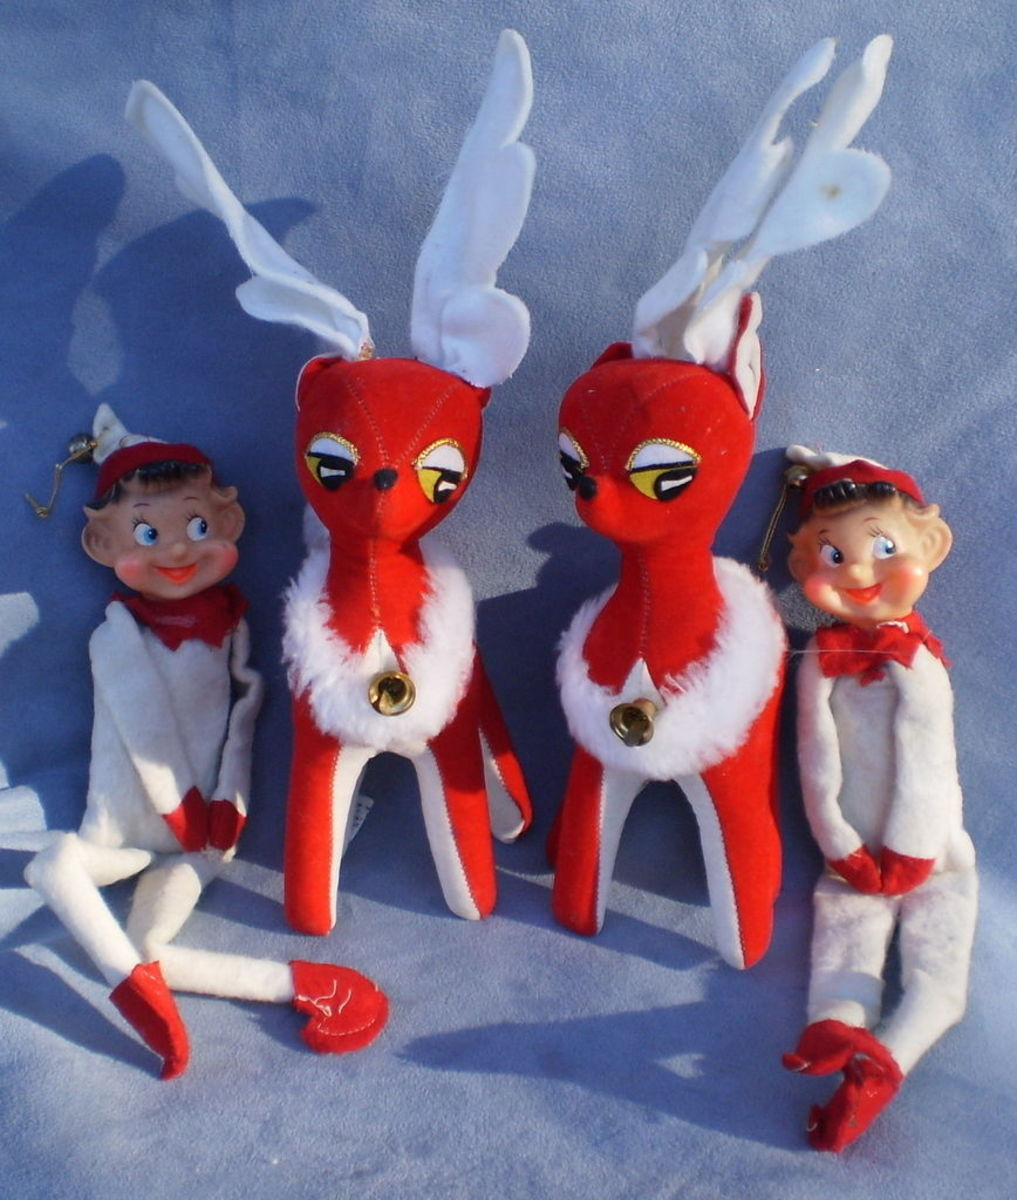 The knee-huger elves and Dream Pet Christmas Reindeer's are part of the American Christmas culture now. These adorable little decorations made in Japan took the western sense holiday magic to a whole new level.